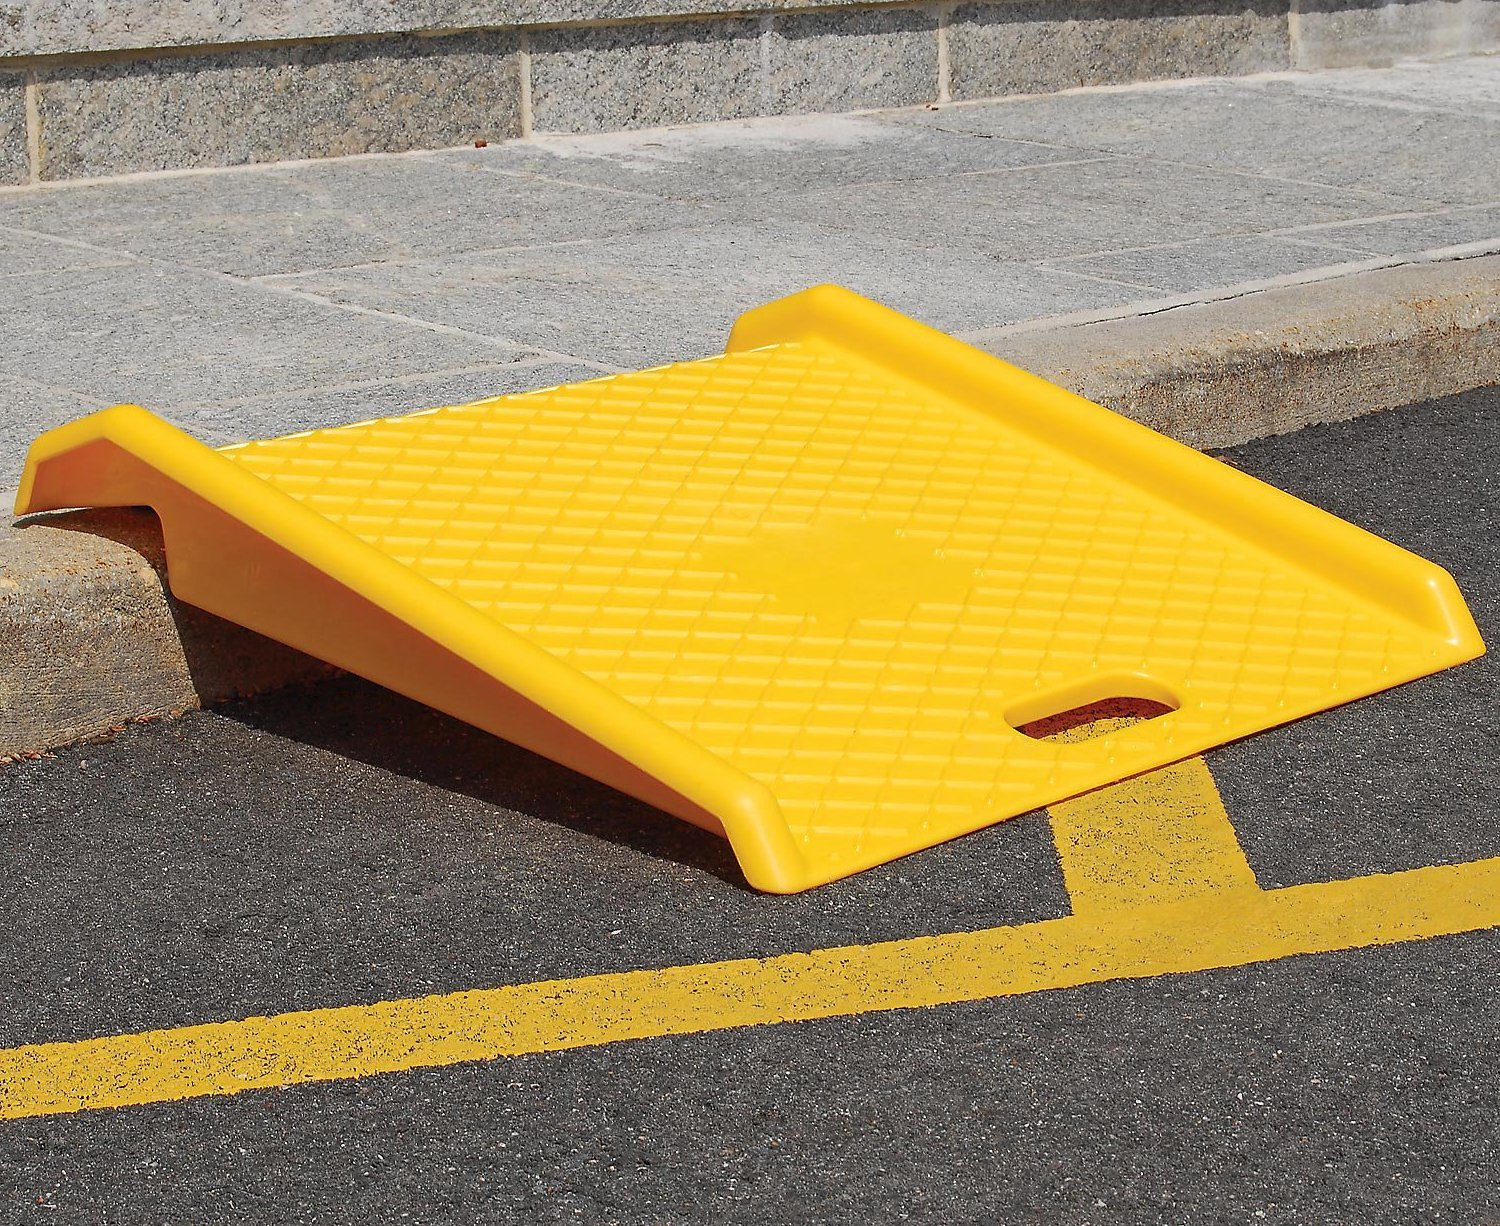 Curb Ramp - Heavy Duty 1000 Lbs Load Capacity - Yellow High Density Polyethylene for Hand Truck Delivery by BUNKERWALL (Image #5)